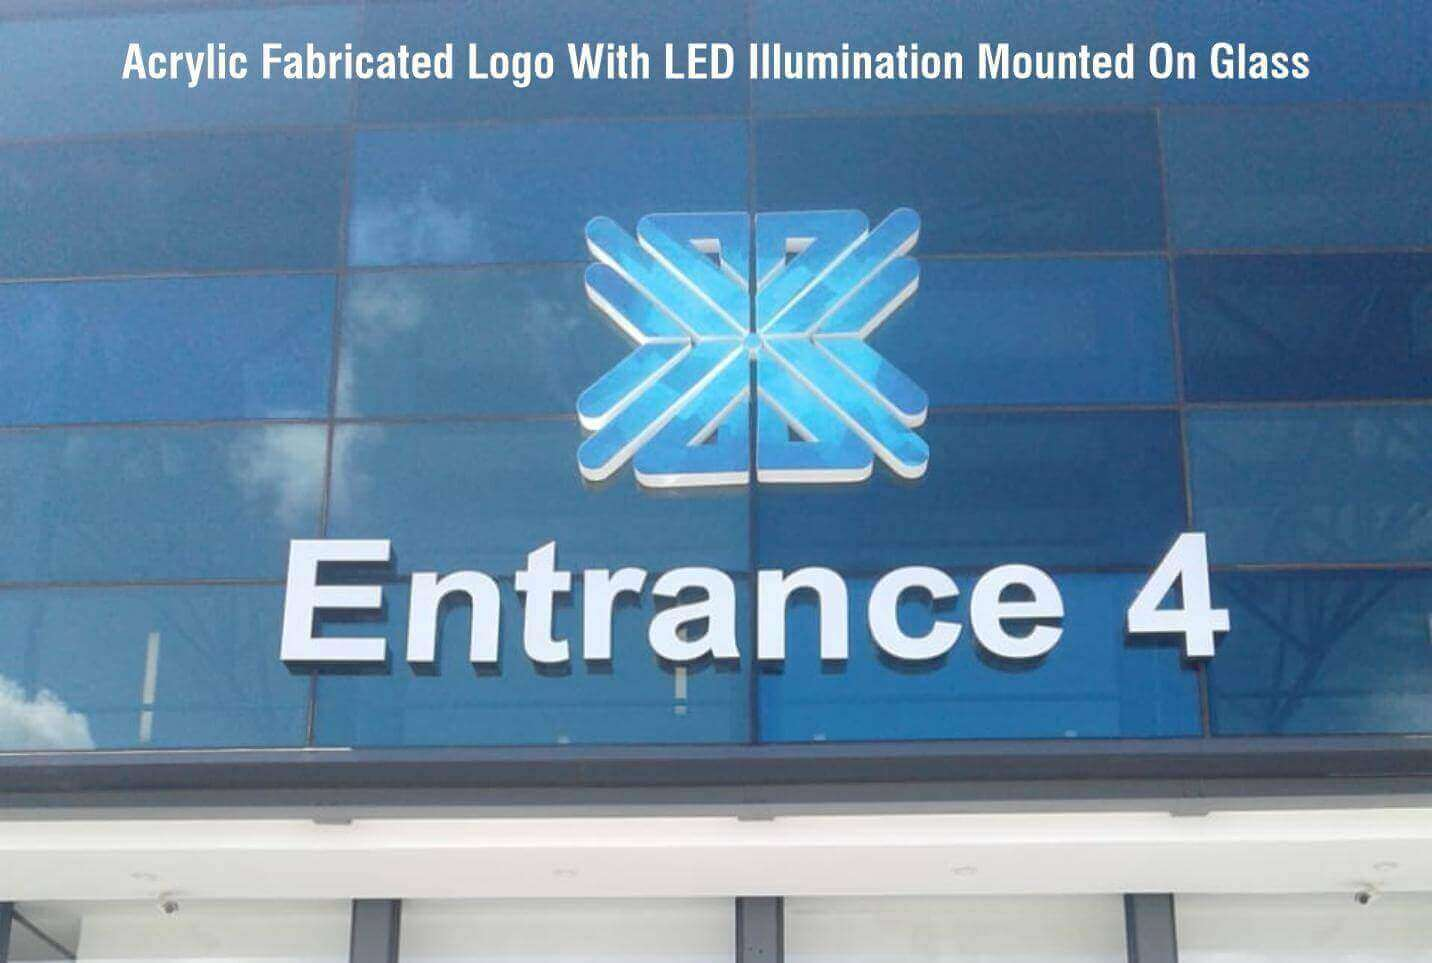 Acrylic Fabricated Logo With LED Illumination Mounted On Glass